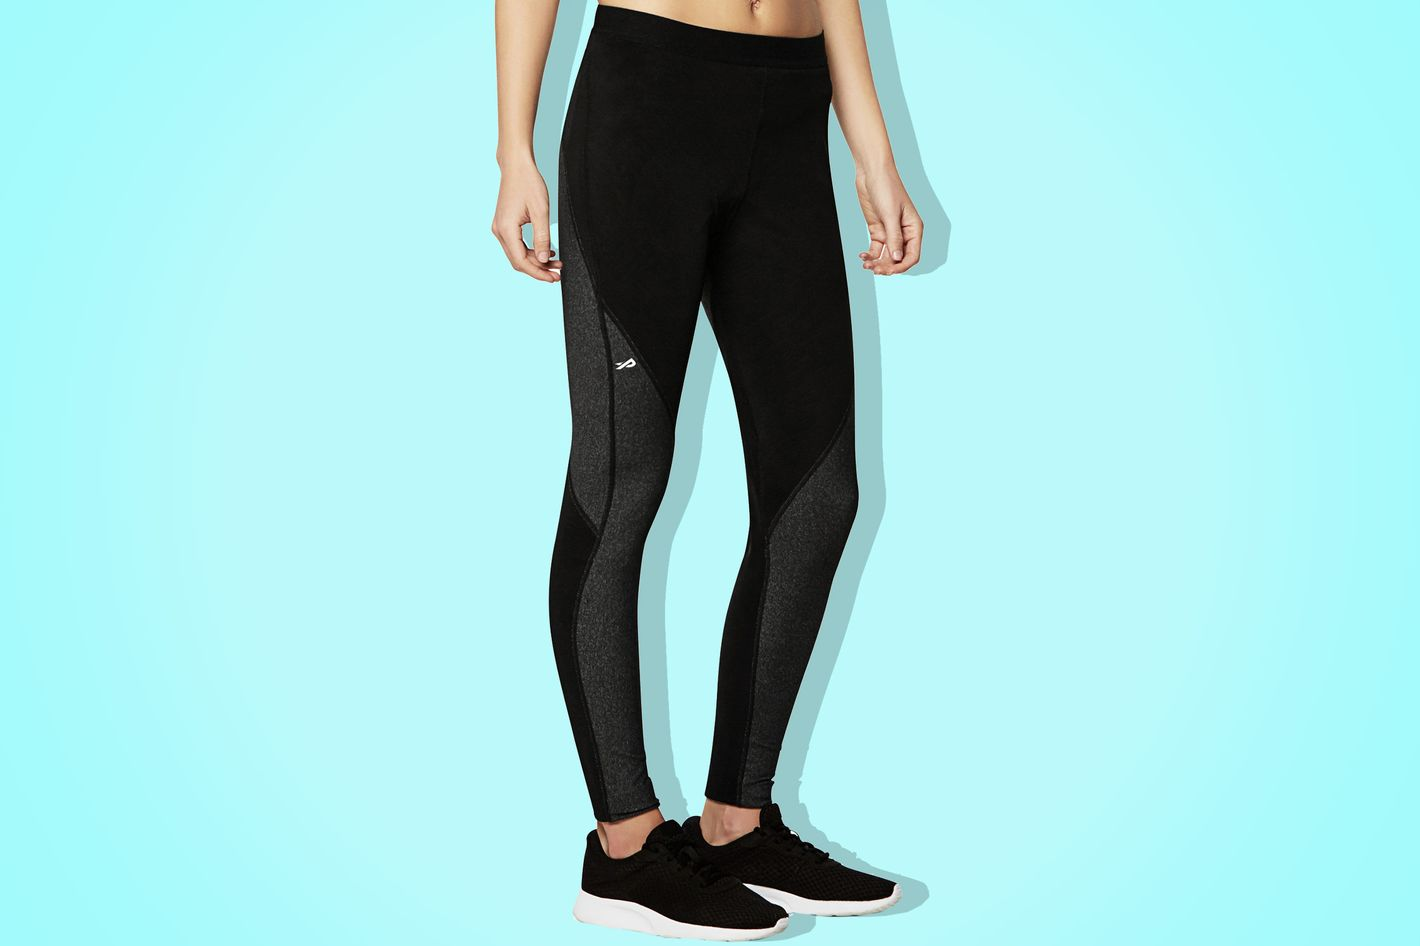 Physiclo Pro Resistance Tights for Women